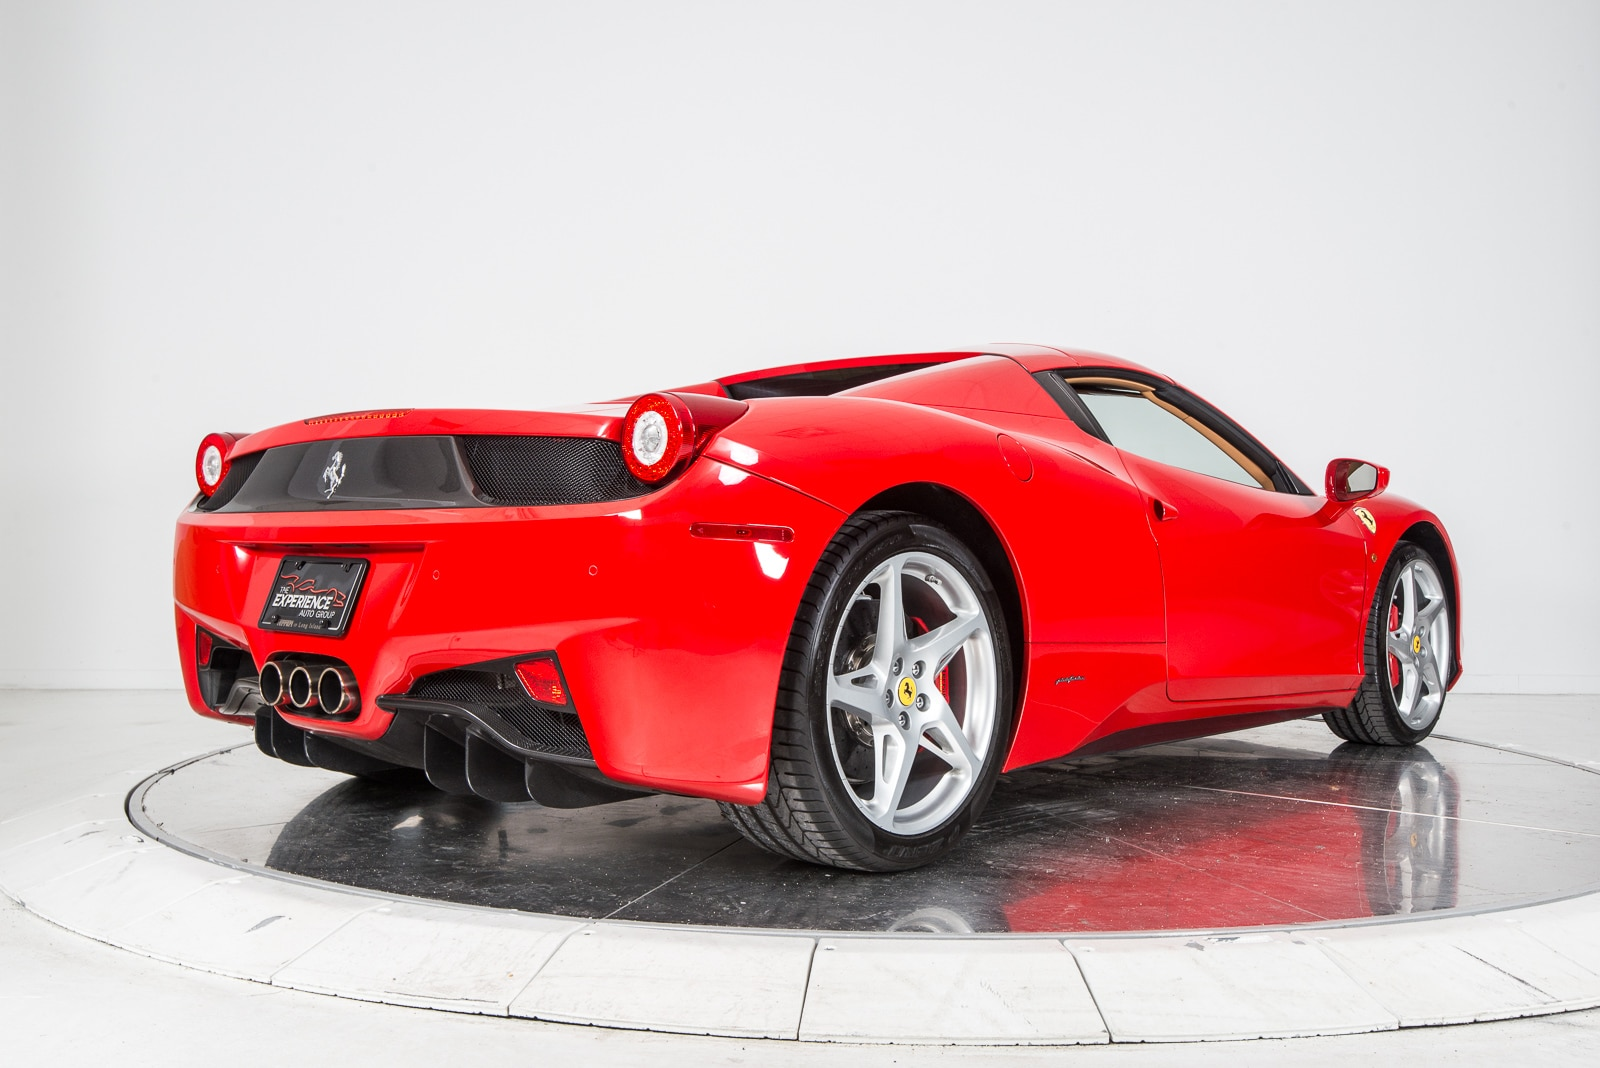 used 2014 ferrari 458 spider for sale plainview near long island ny vin zff68nhaxe0198463. Black Bedroom Furniture Sets. Home Design Ideas